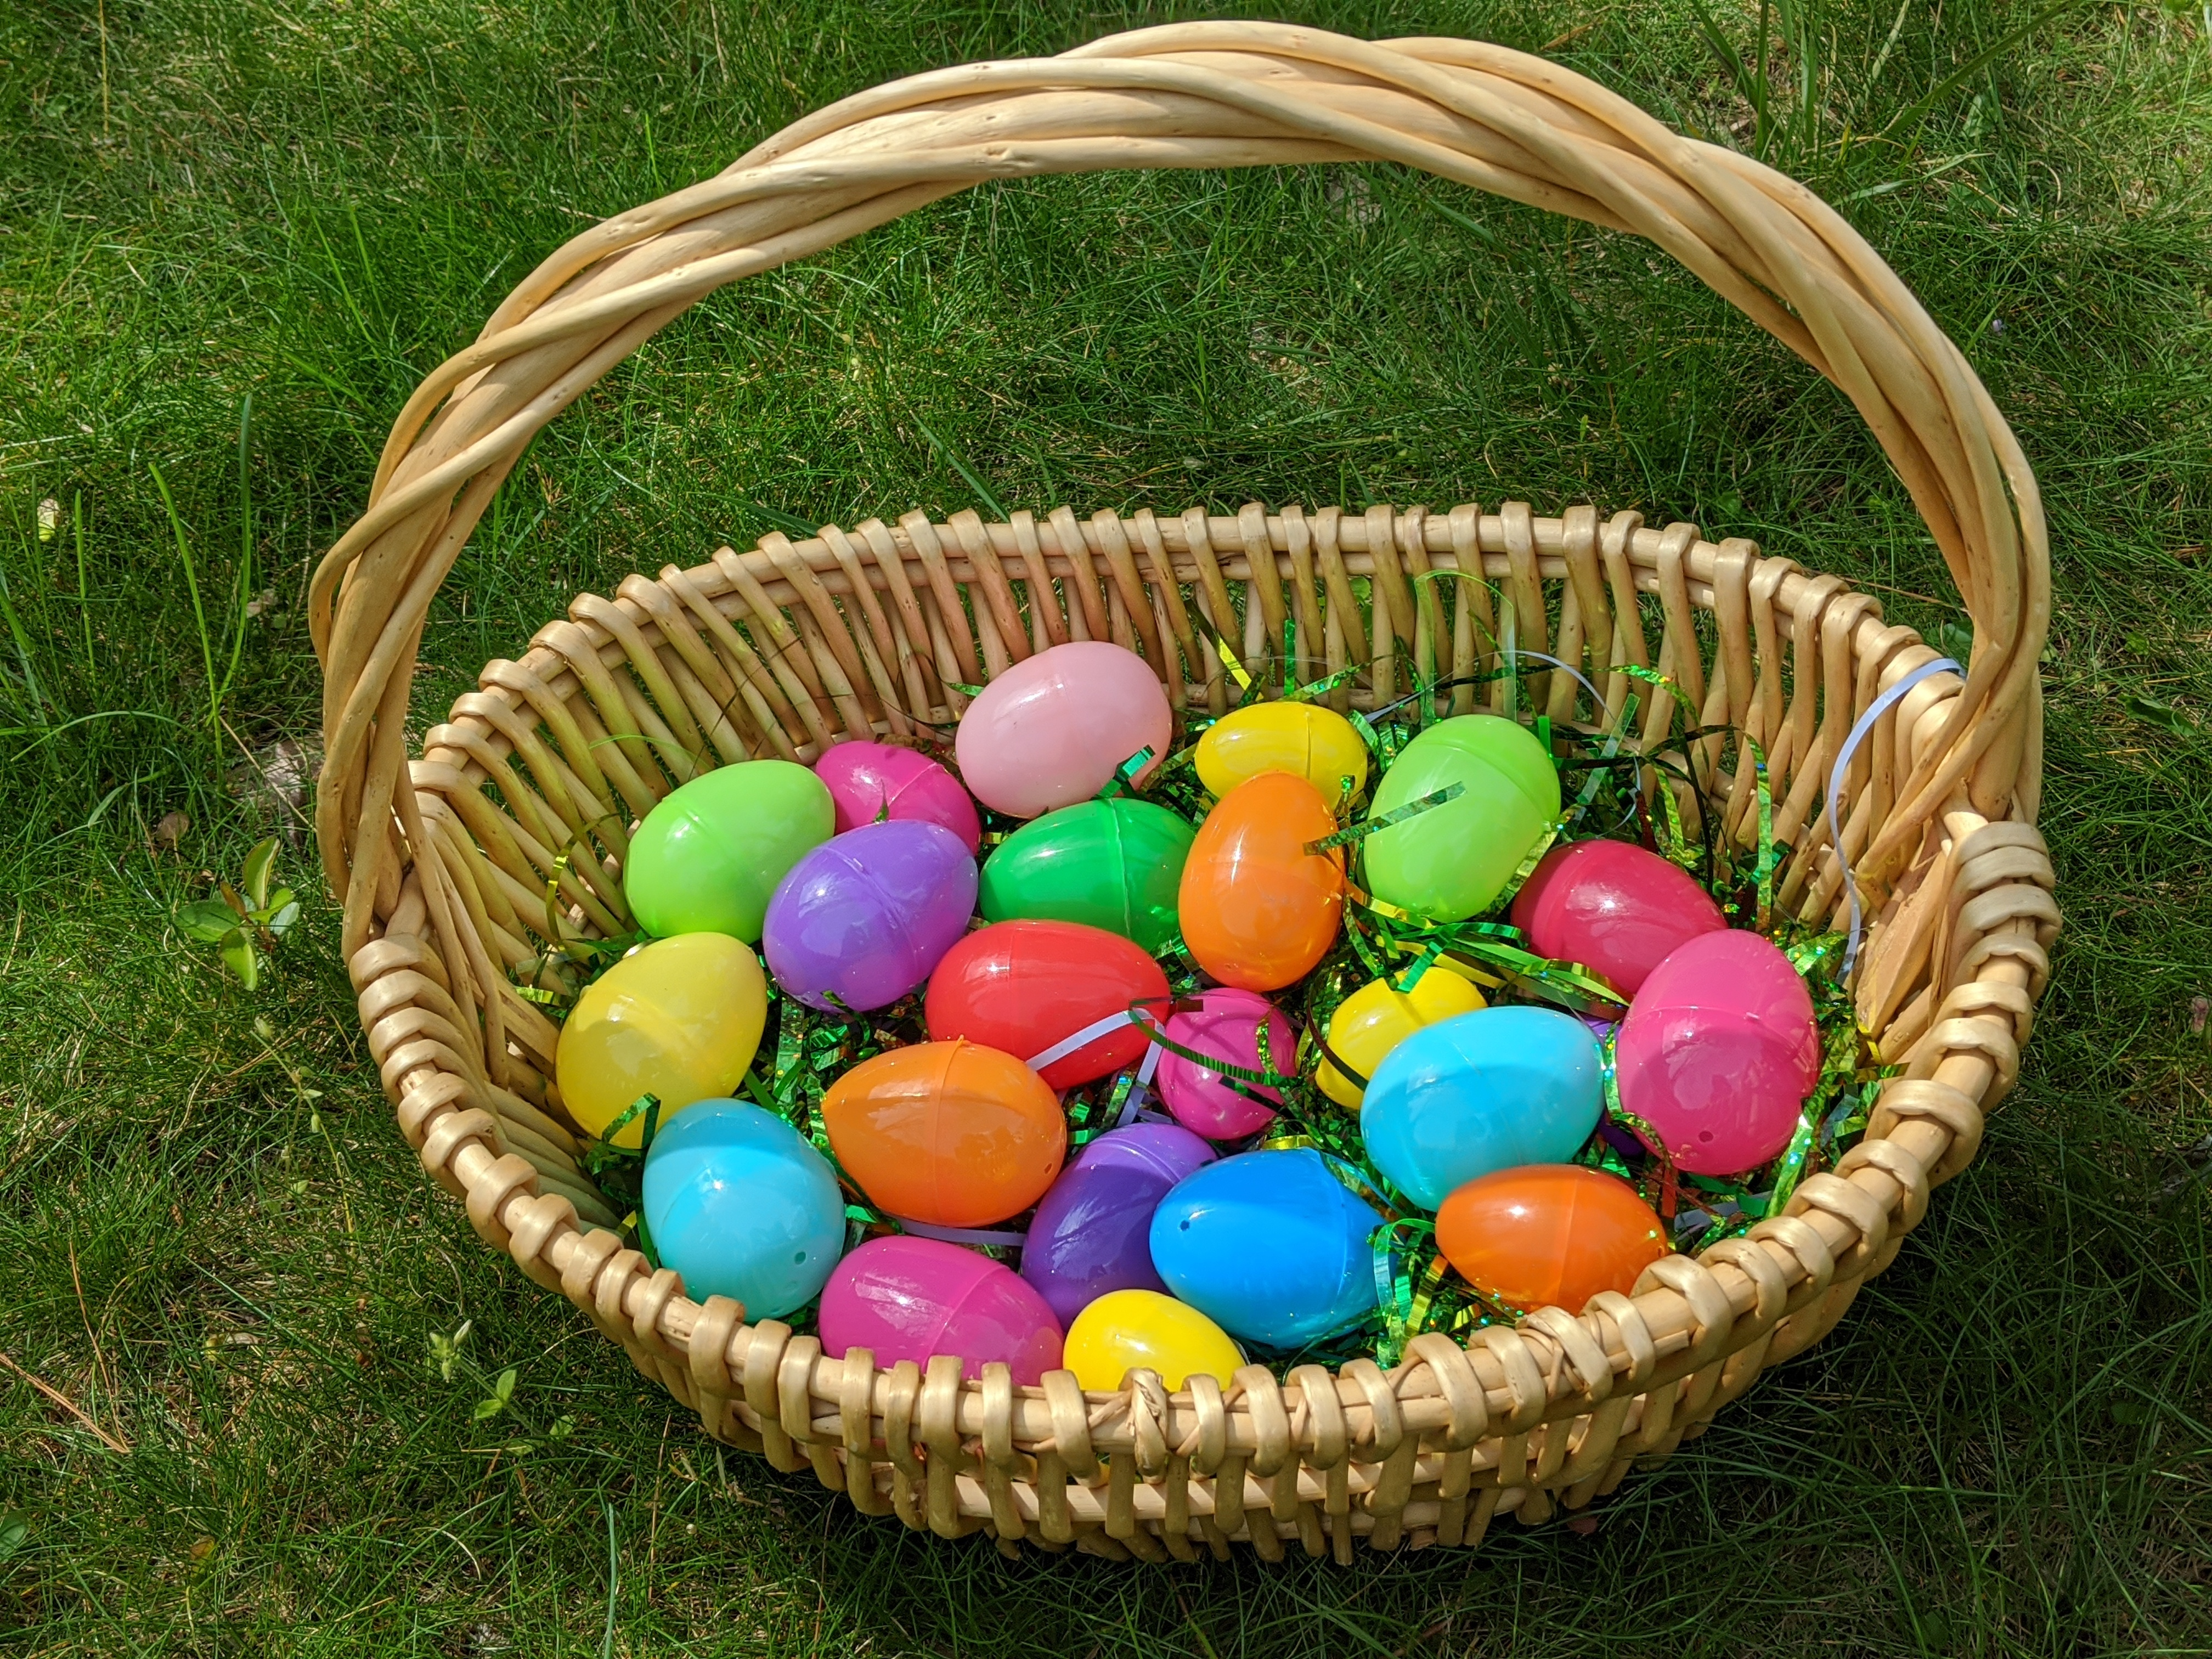 Easter basket filled with decorative grass and plastic Easter eggs for Virtual Egg Hunt